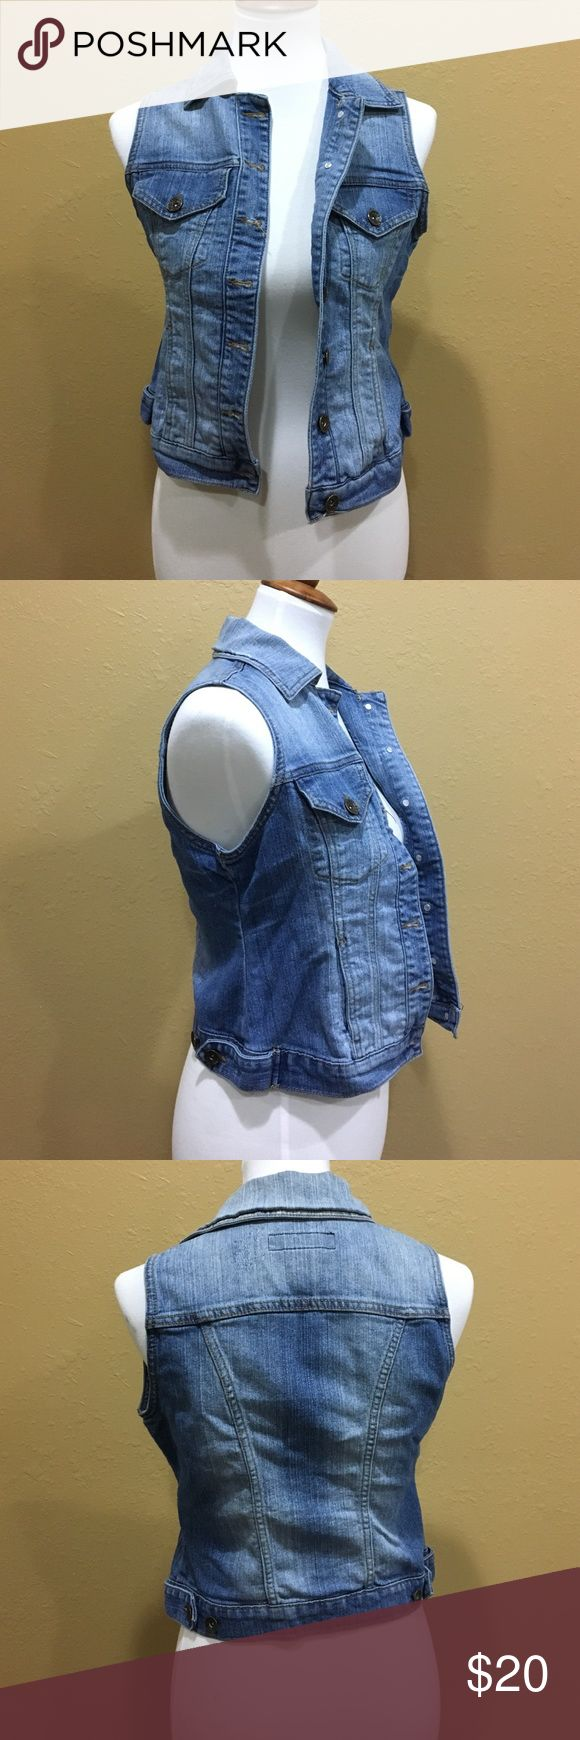 Paris Blues Blue Jean Vest Jacket Pre-Loved--Great Condition❤️. Small Size. Please let me know if you have any questions! ☺️ Paris Blues Jackets & Coats Vests